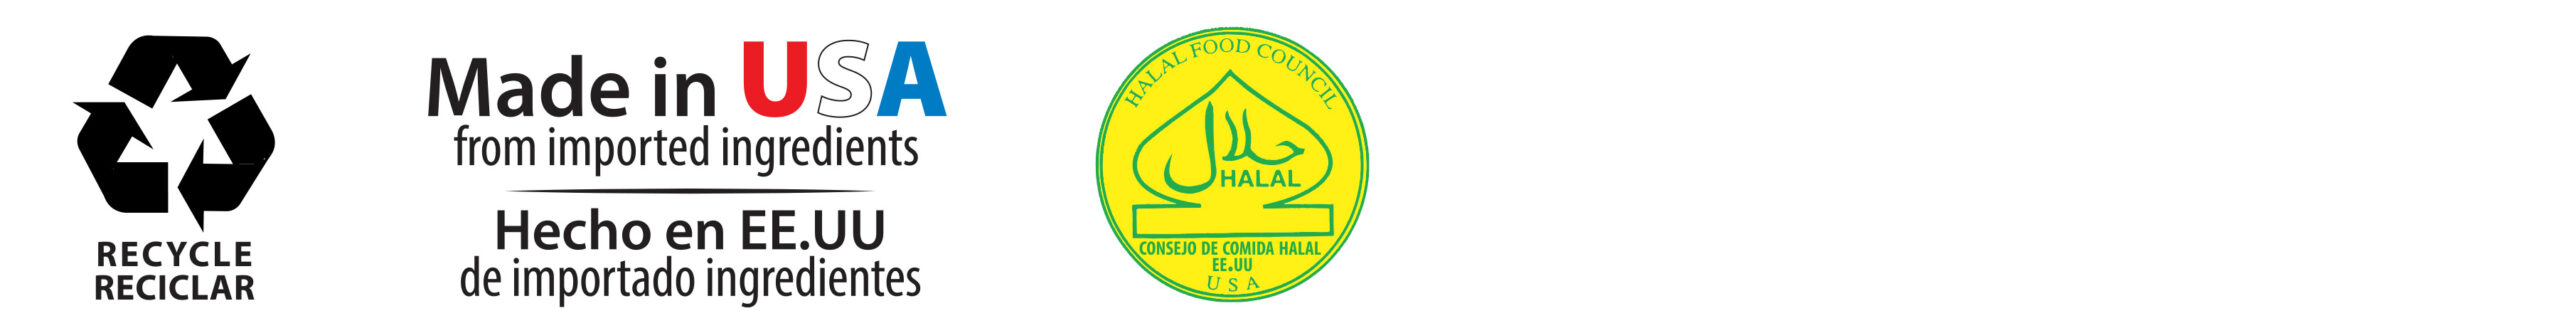 recycle-made in USA-halal